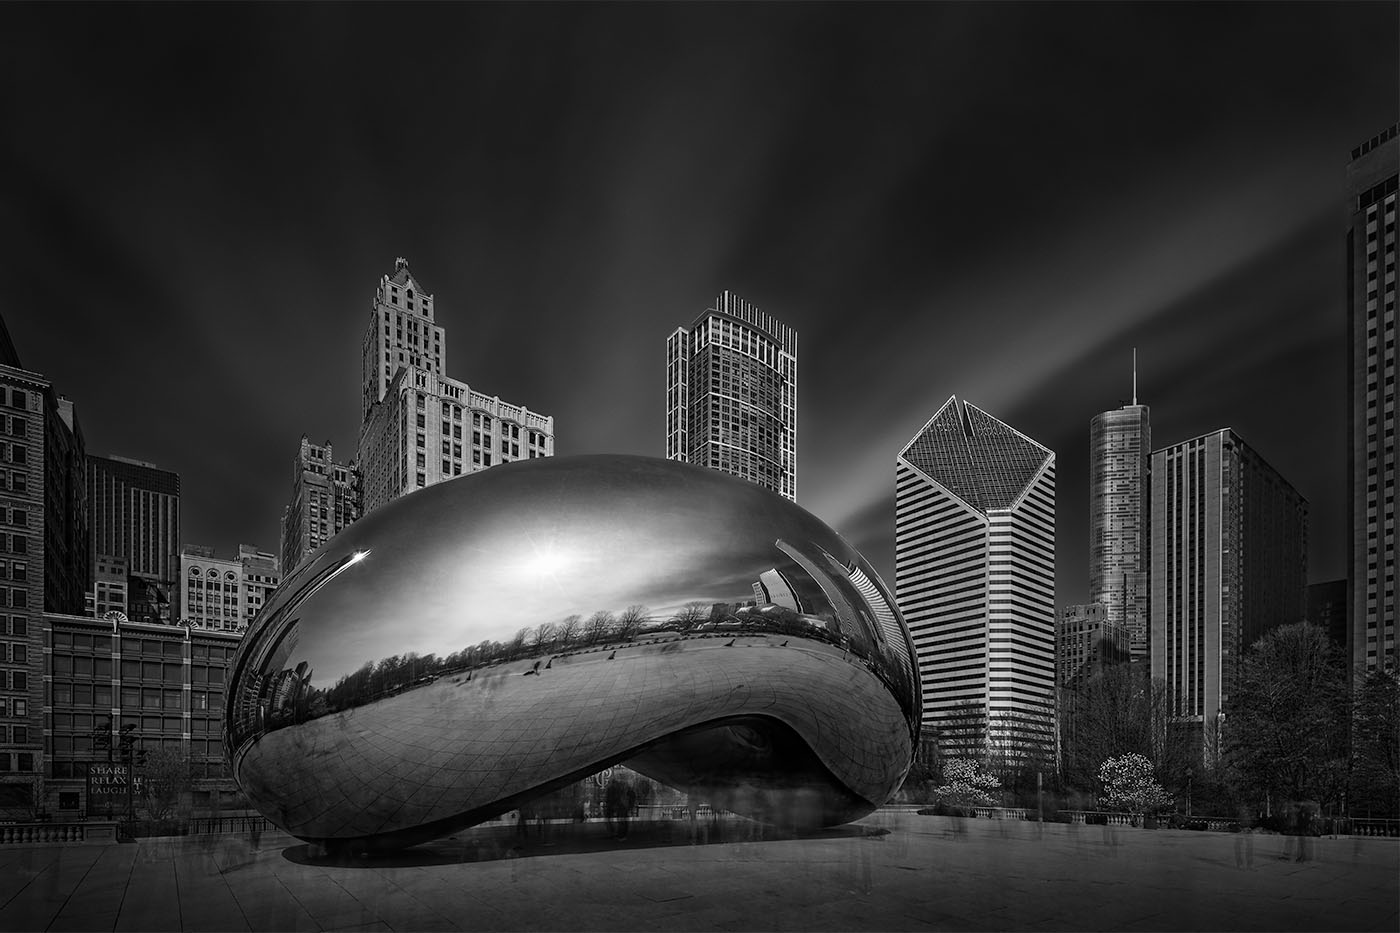 Cloud Echo II - Chicago © Julia Anna Gospodarou 2019